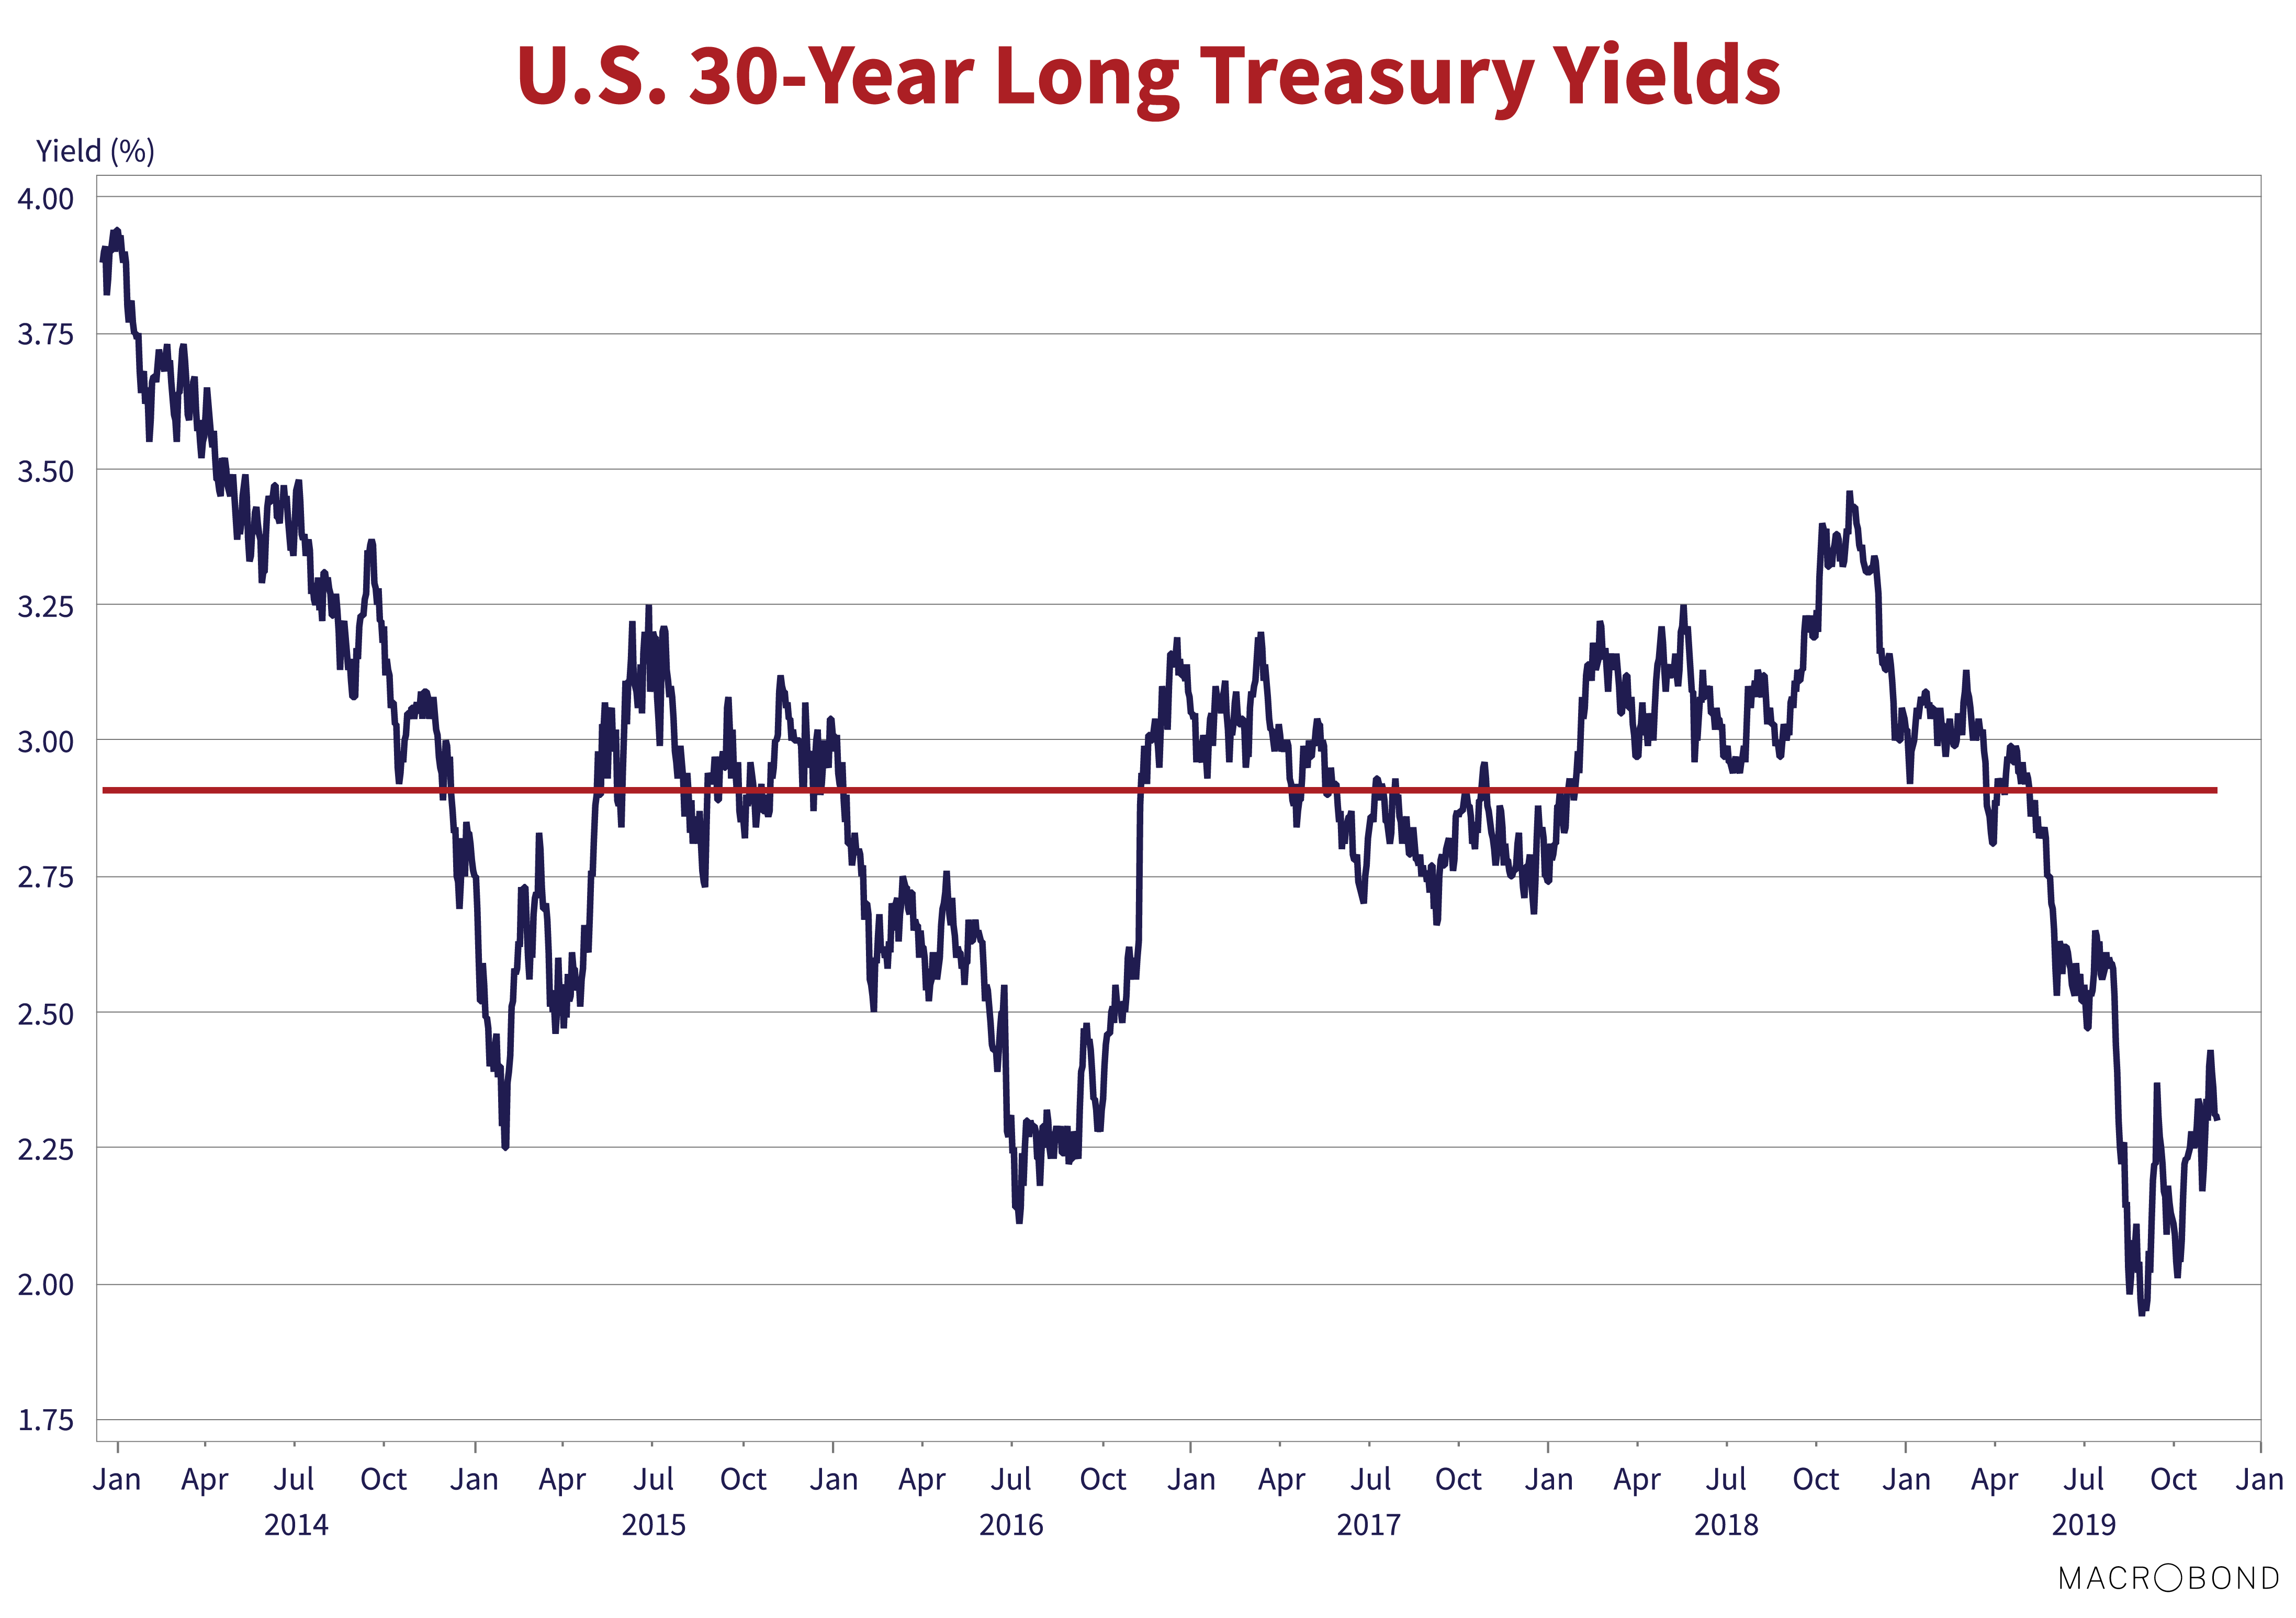 U.S 30-Year Long Treasury Yields. Source: Macrobond. Line graph shows values for Jan 2014 to Jan 2020. A trend line is drawn at 2.9% yield. The graph begins at 3.75%-4% yield and ends at 2.25%-2.50% yield.